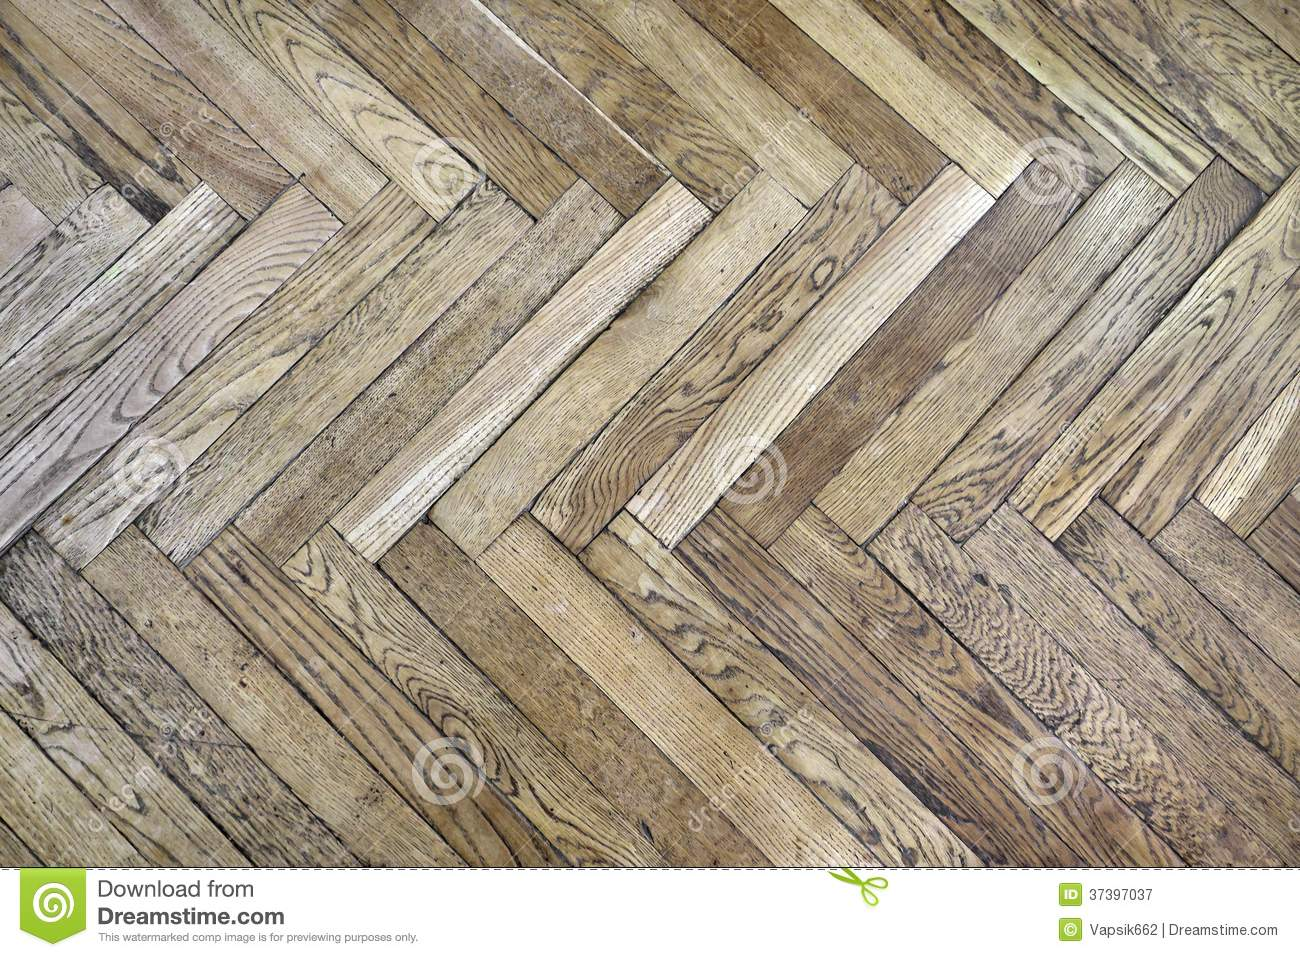 White Wood Background as well Tp medieval together with Textura De Madera Oscura 40317 also White Siding Wood Texture Seamless 09079 moreover Light Old Raw Wood Texture Seamless 04321. on gray wood plank texture